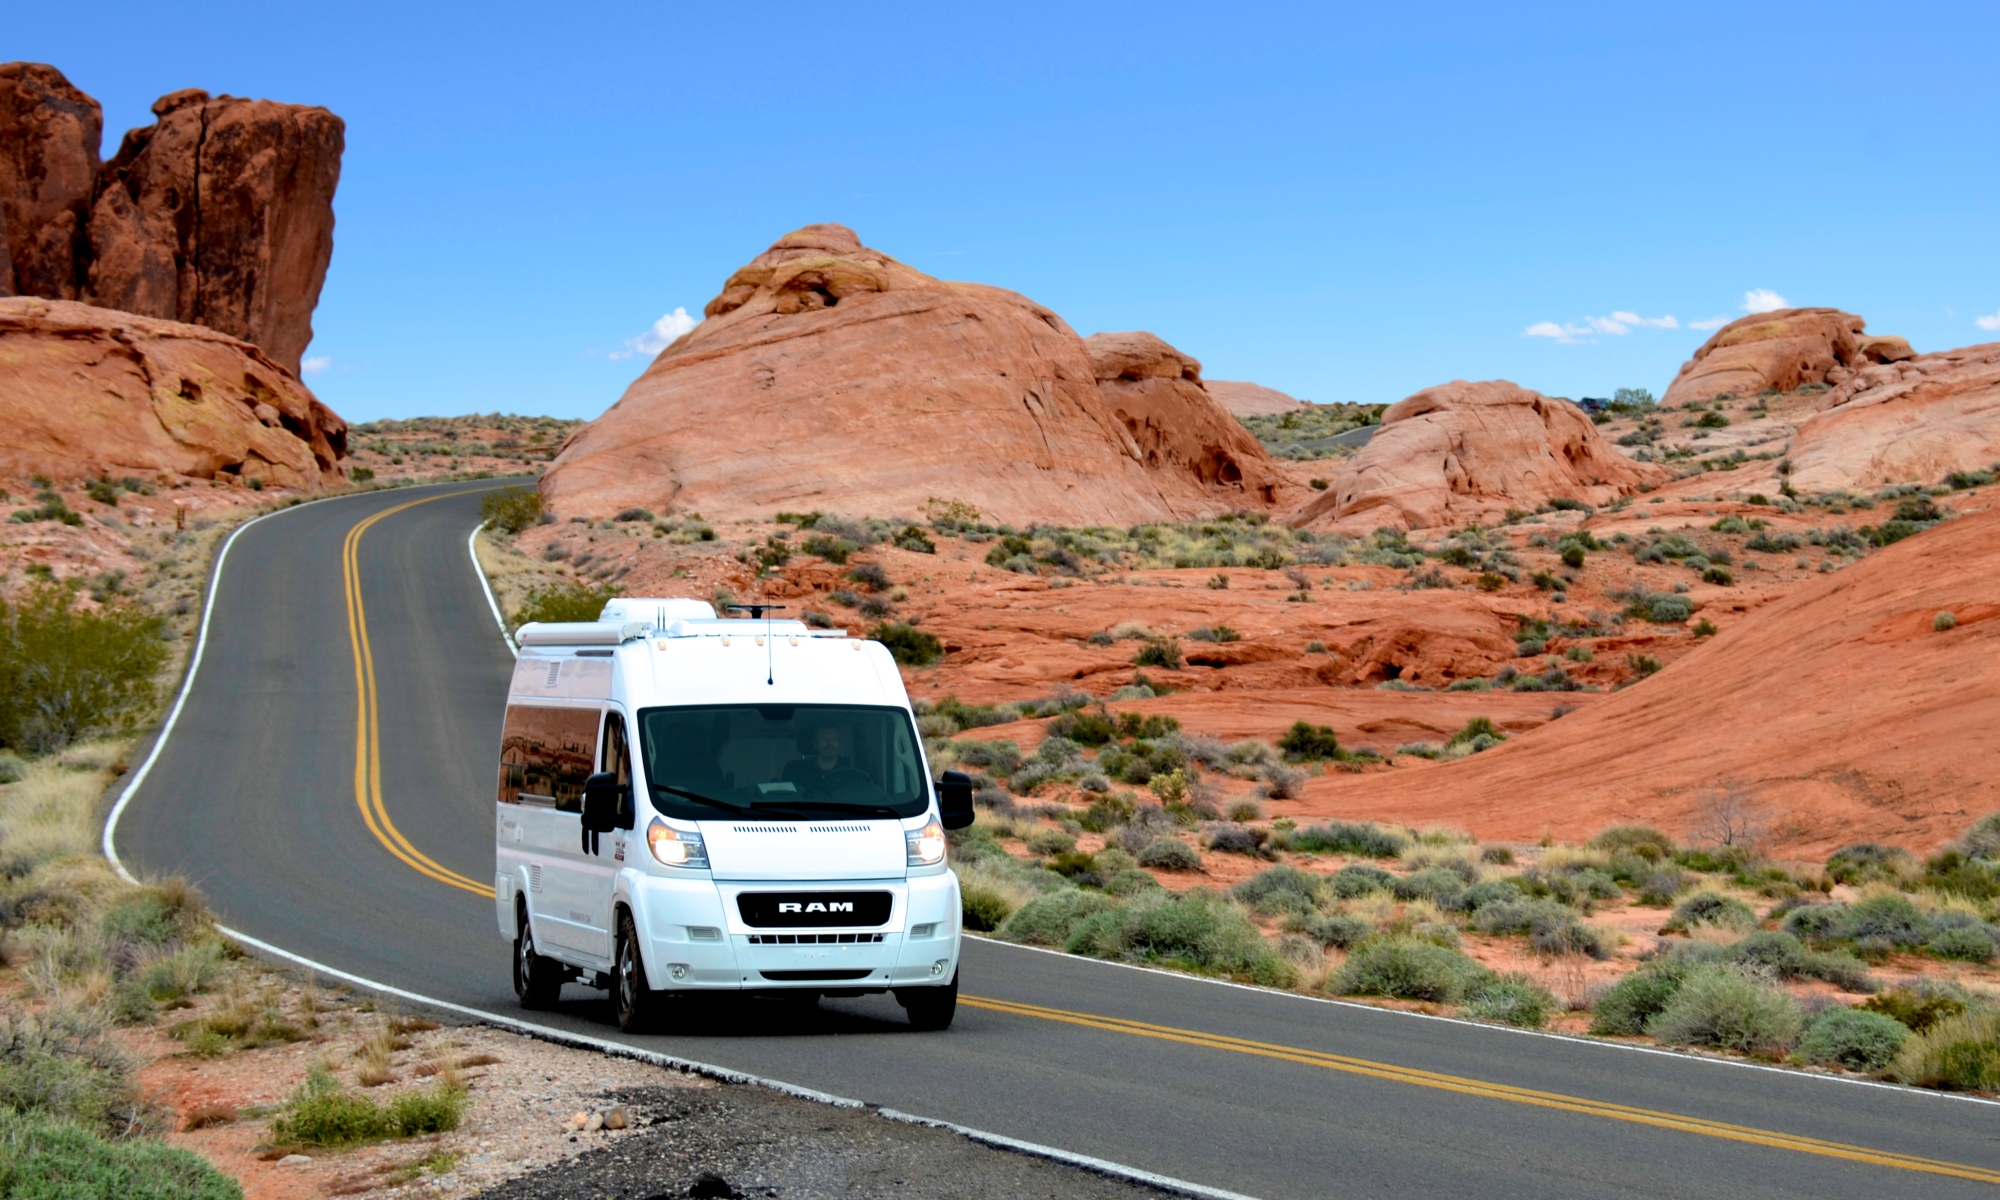 VR Panoramic - Valley of Fire